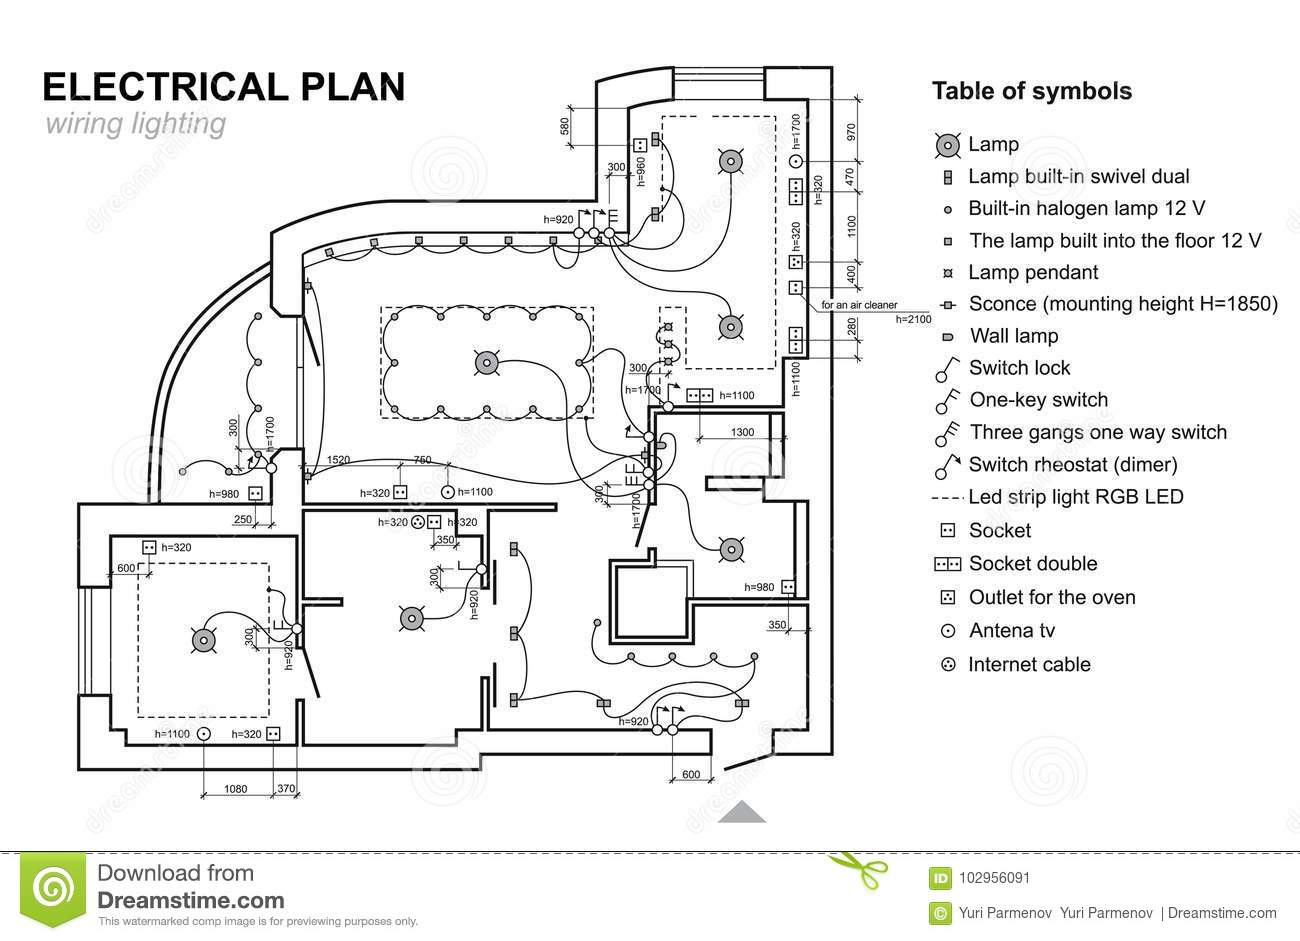 Plan Wiring Lighting  Electrical Schematic Interior  Set